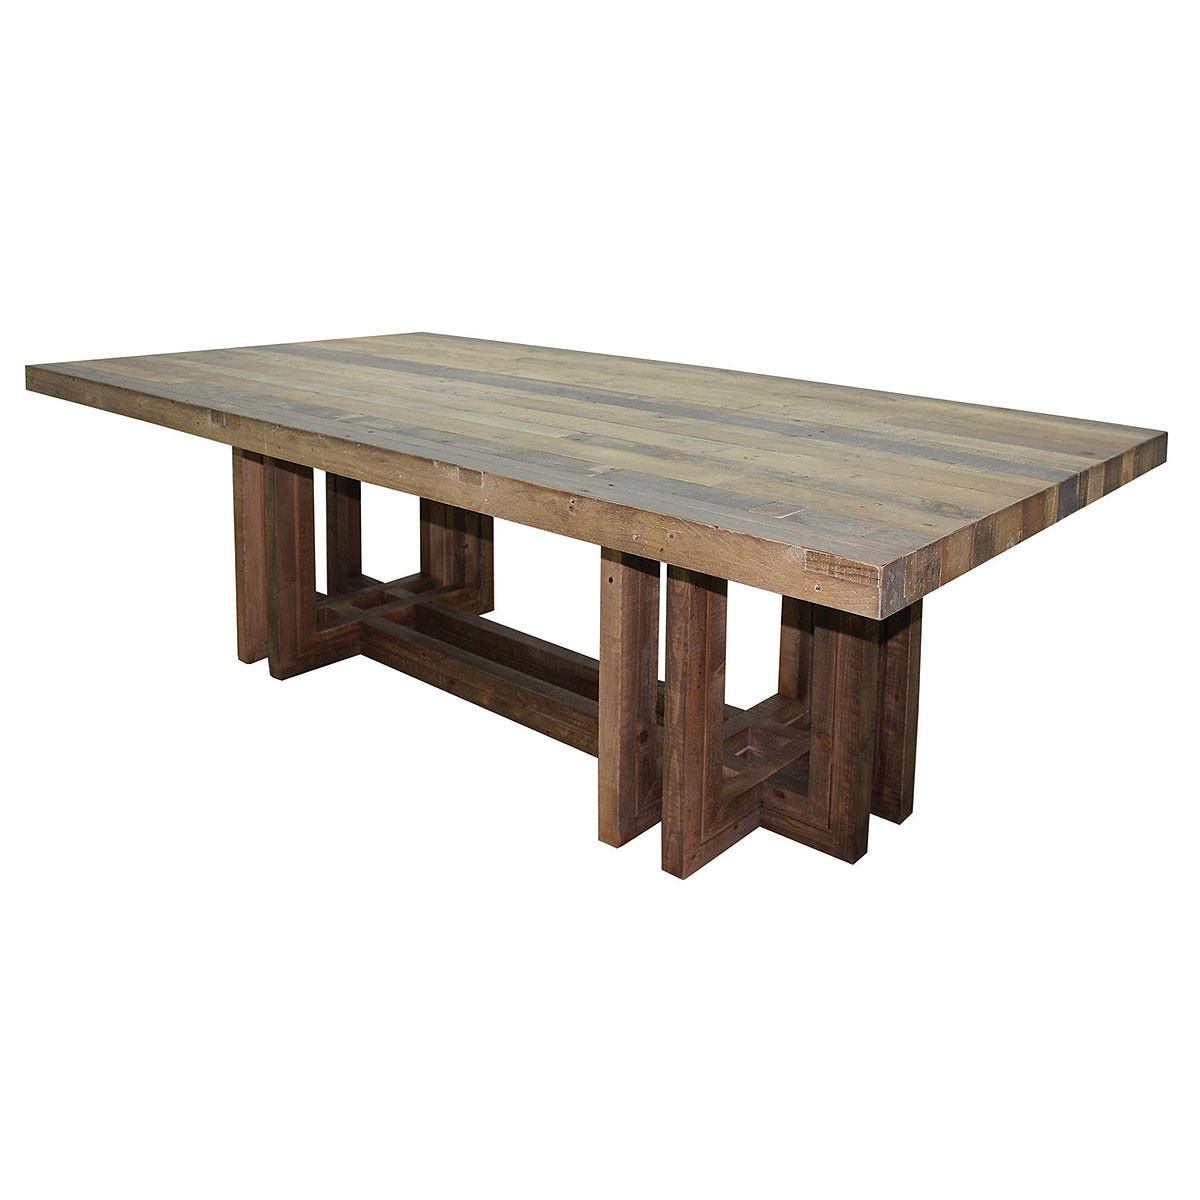 Reclaimed Wood Trestle Dining Table WB Designs - Reclaimed wood dining table